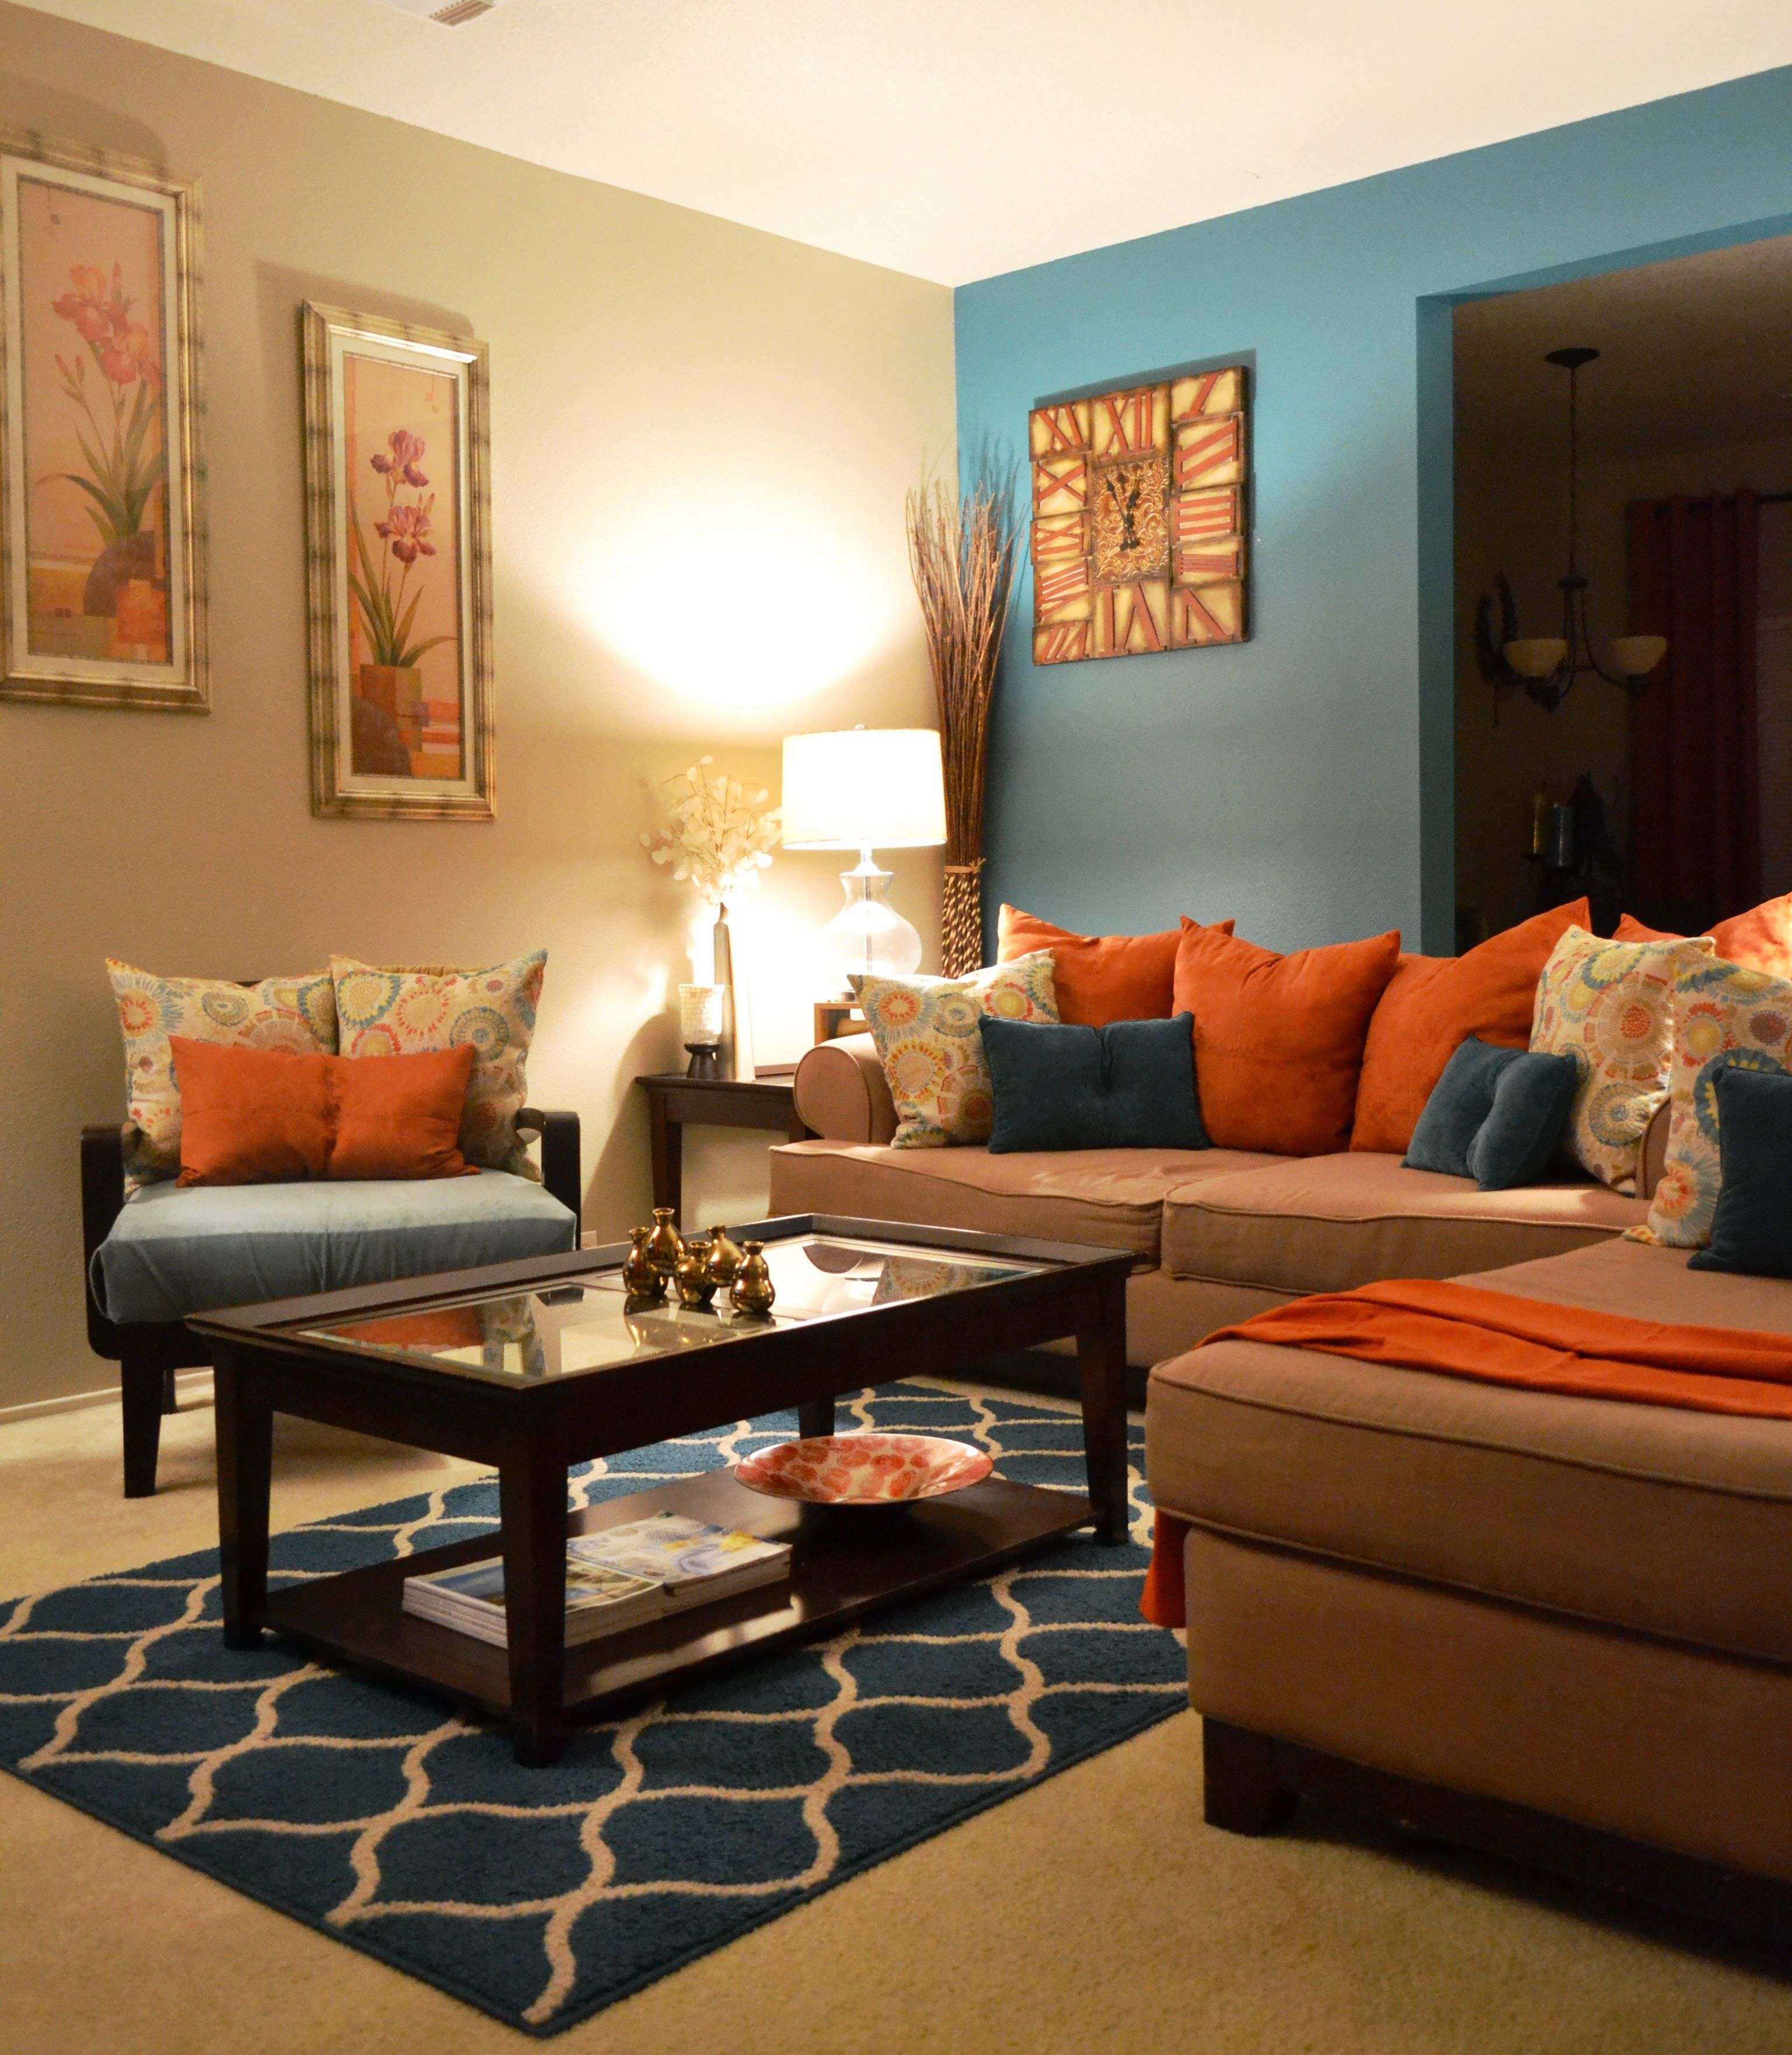 rugs, coffee table, pillows, teal, orange, living room